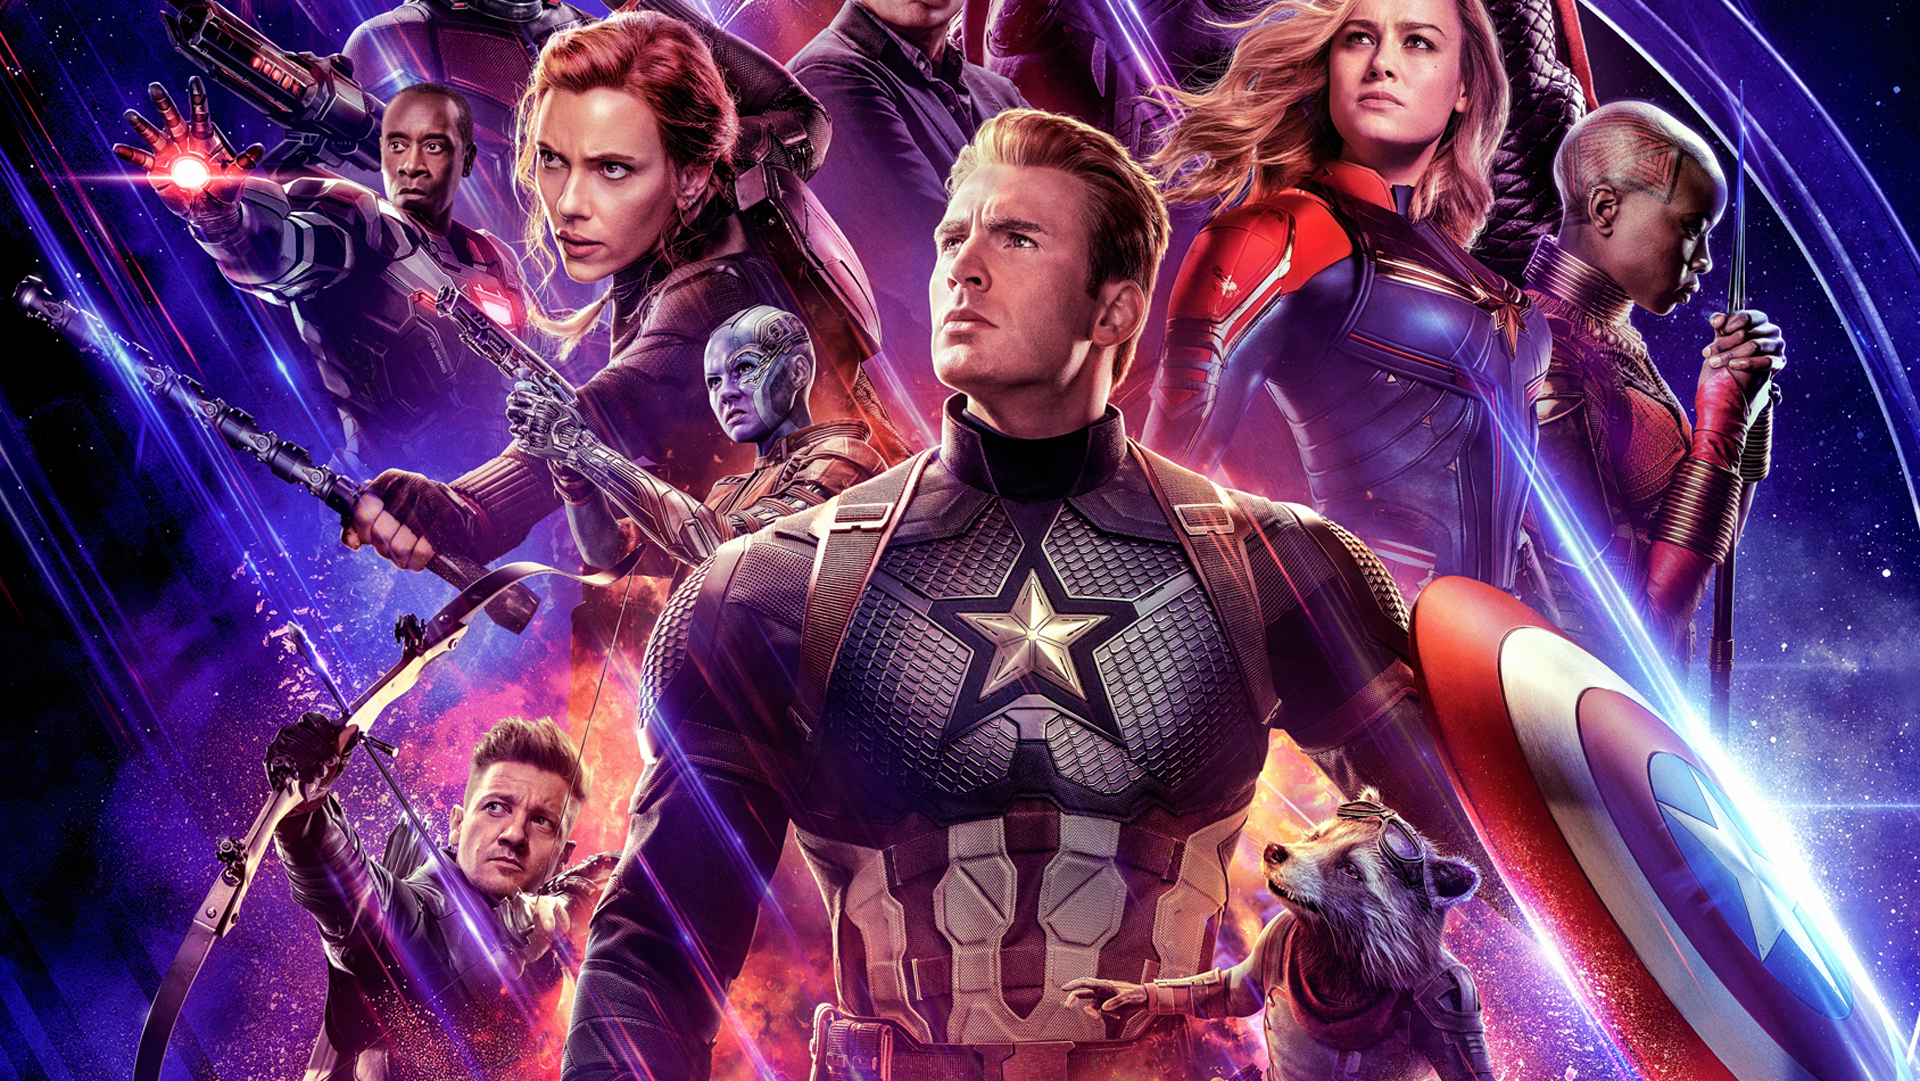 Avengers Endgame Hd Wallpaper Background Image 1920x1081 Id 998470 Wallpaper Abyss